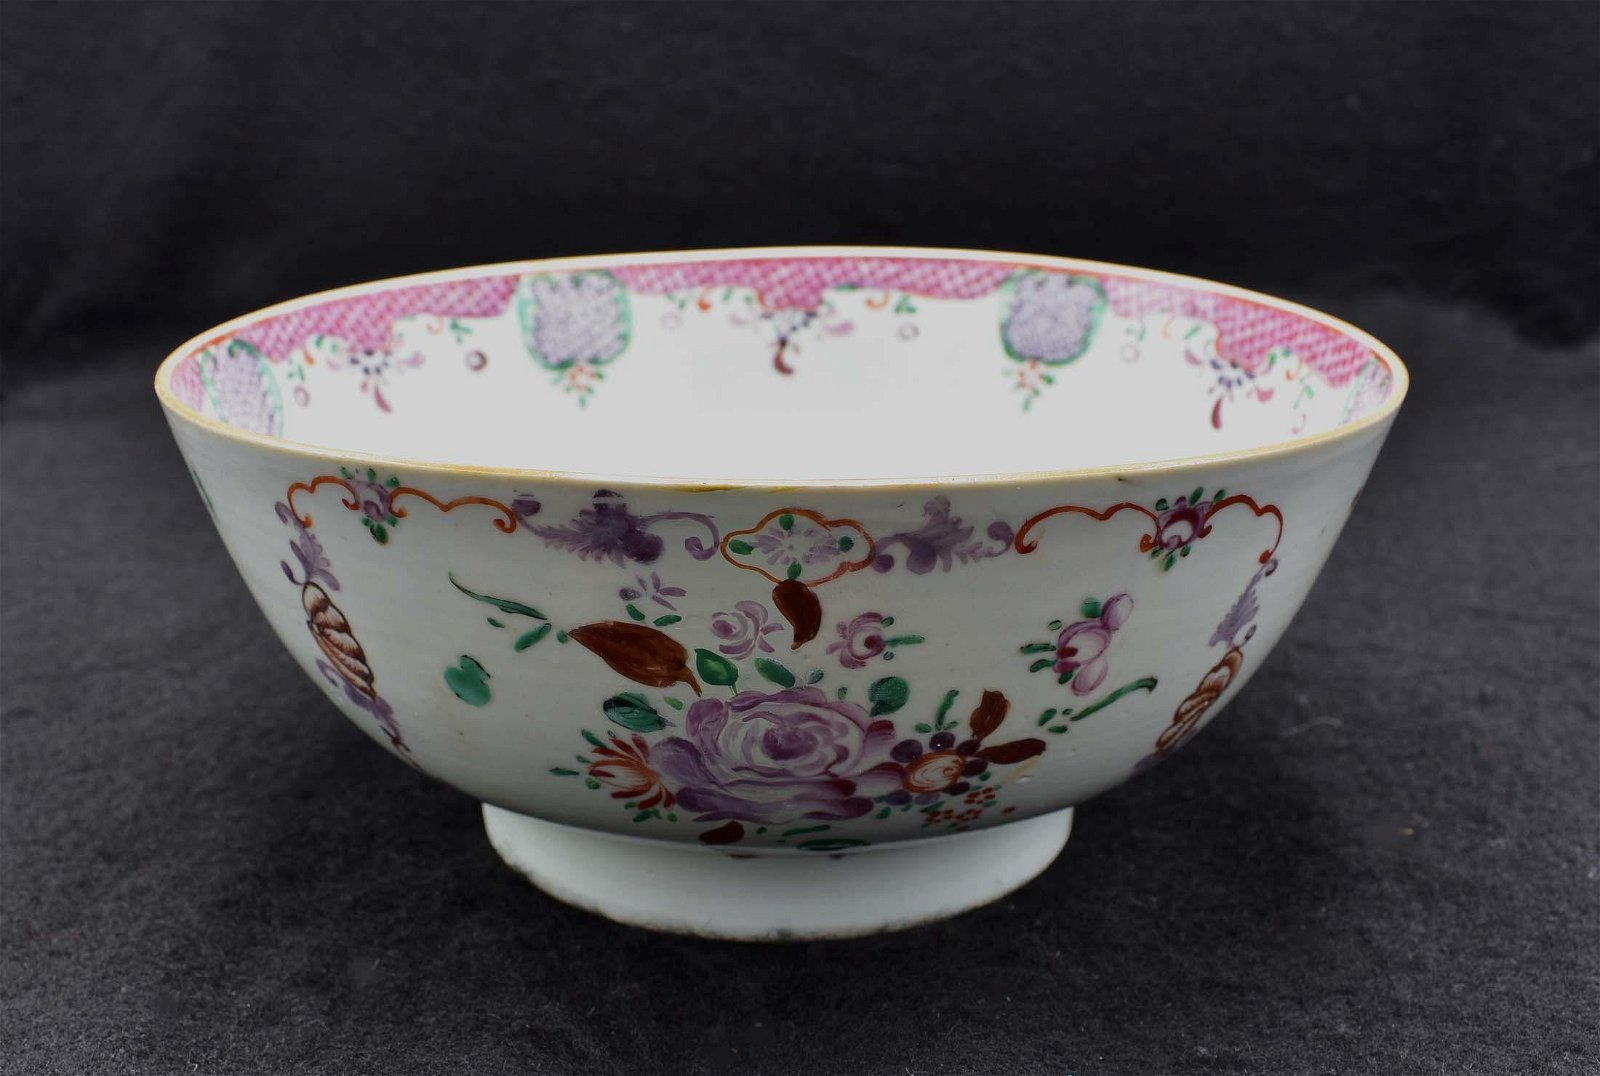 CHINESE EXPORT FAMILLE ROSE DECORATED PORCELAIN BOWL